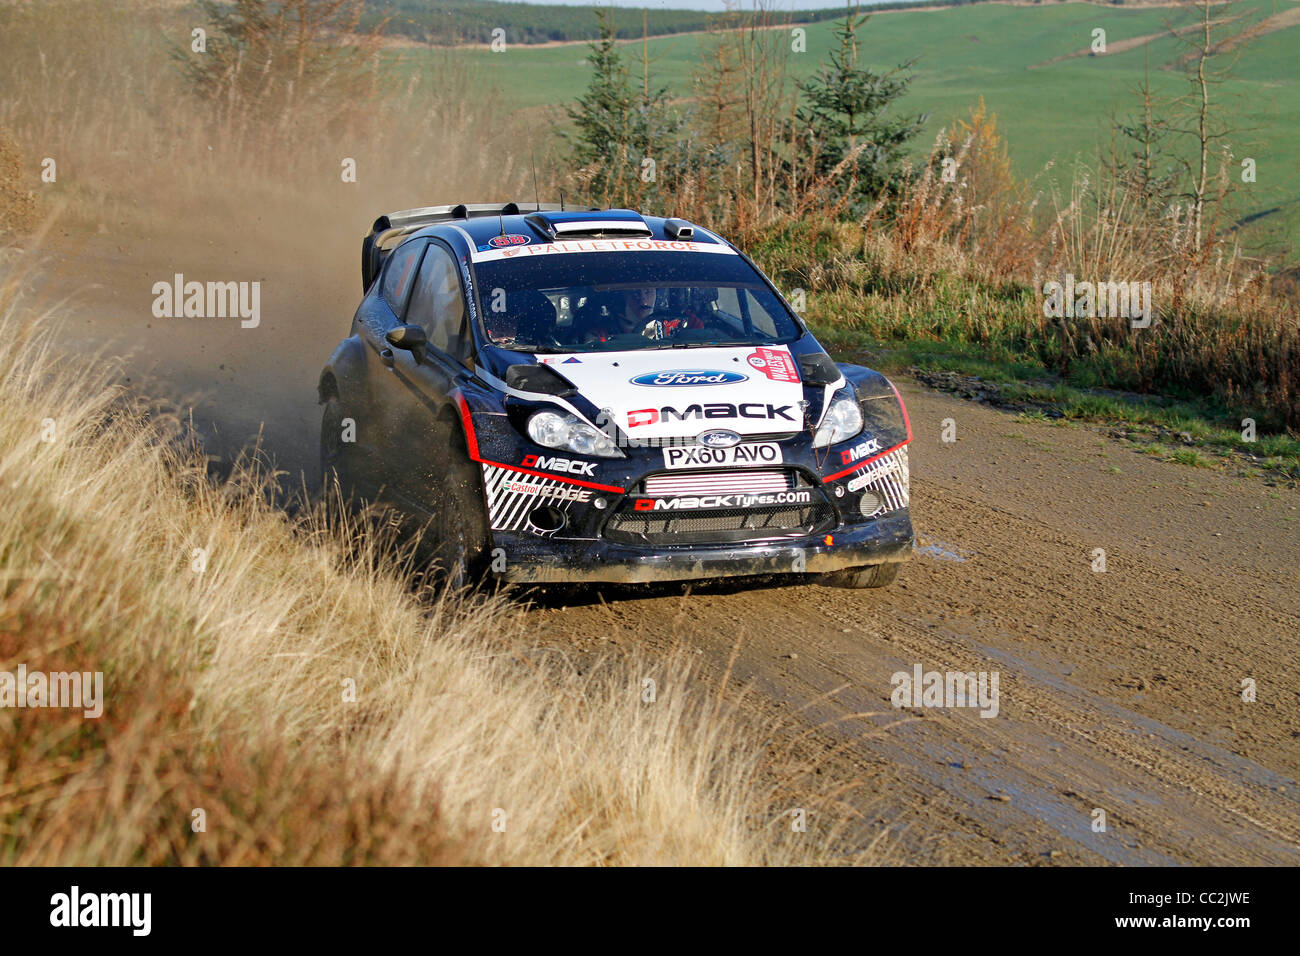 Ford Rally Car Stock Photos Ford Rally Car Stock Images Page - Car rally near me